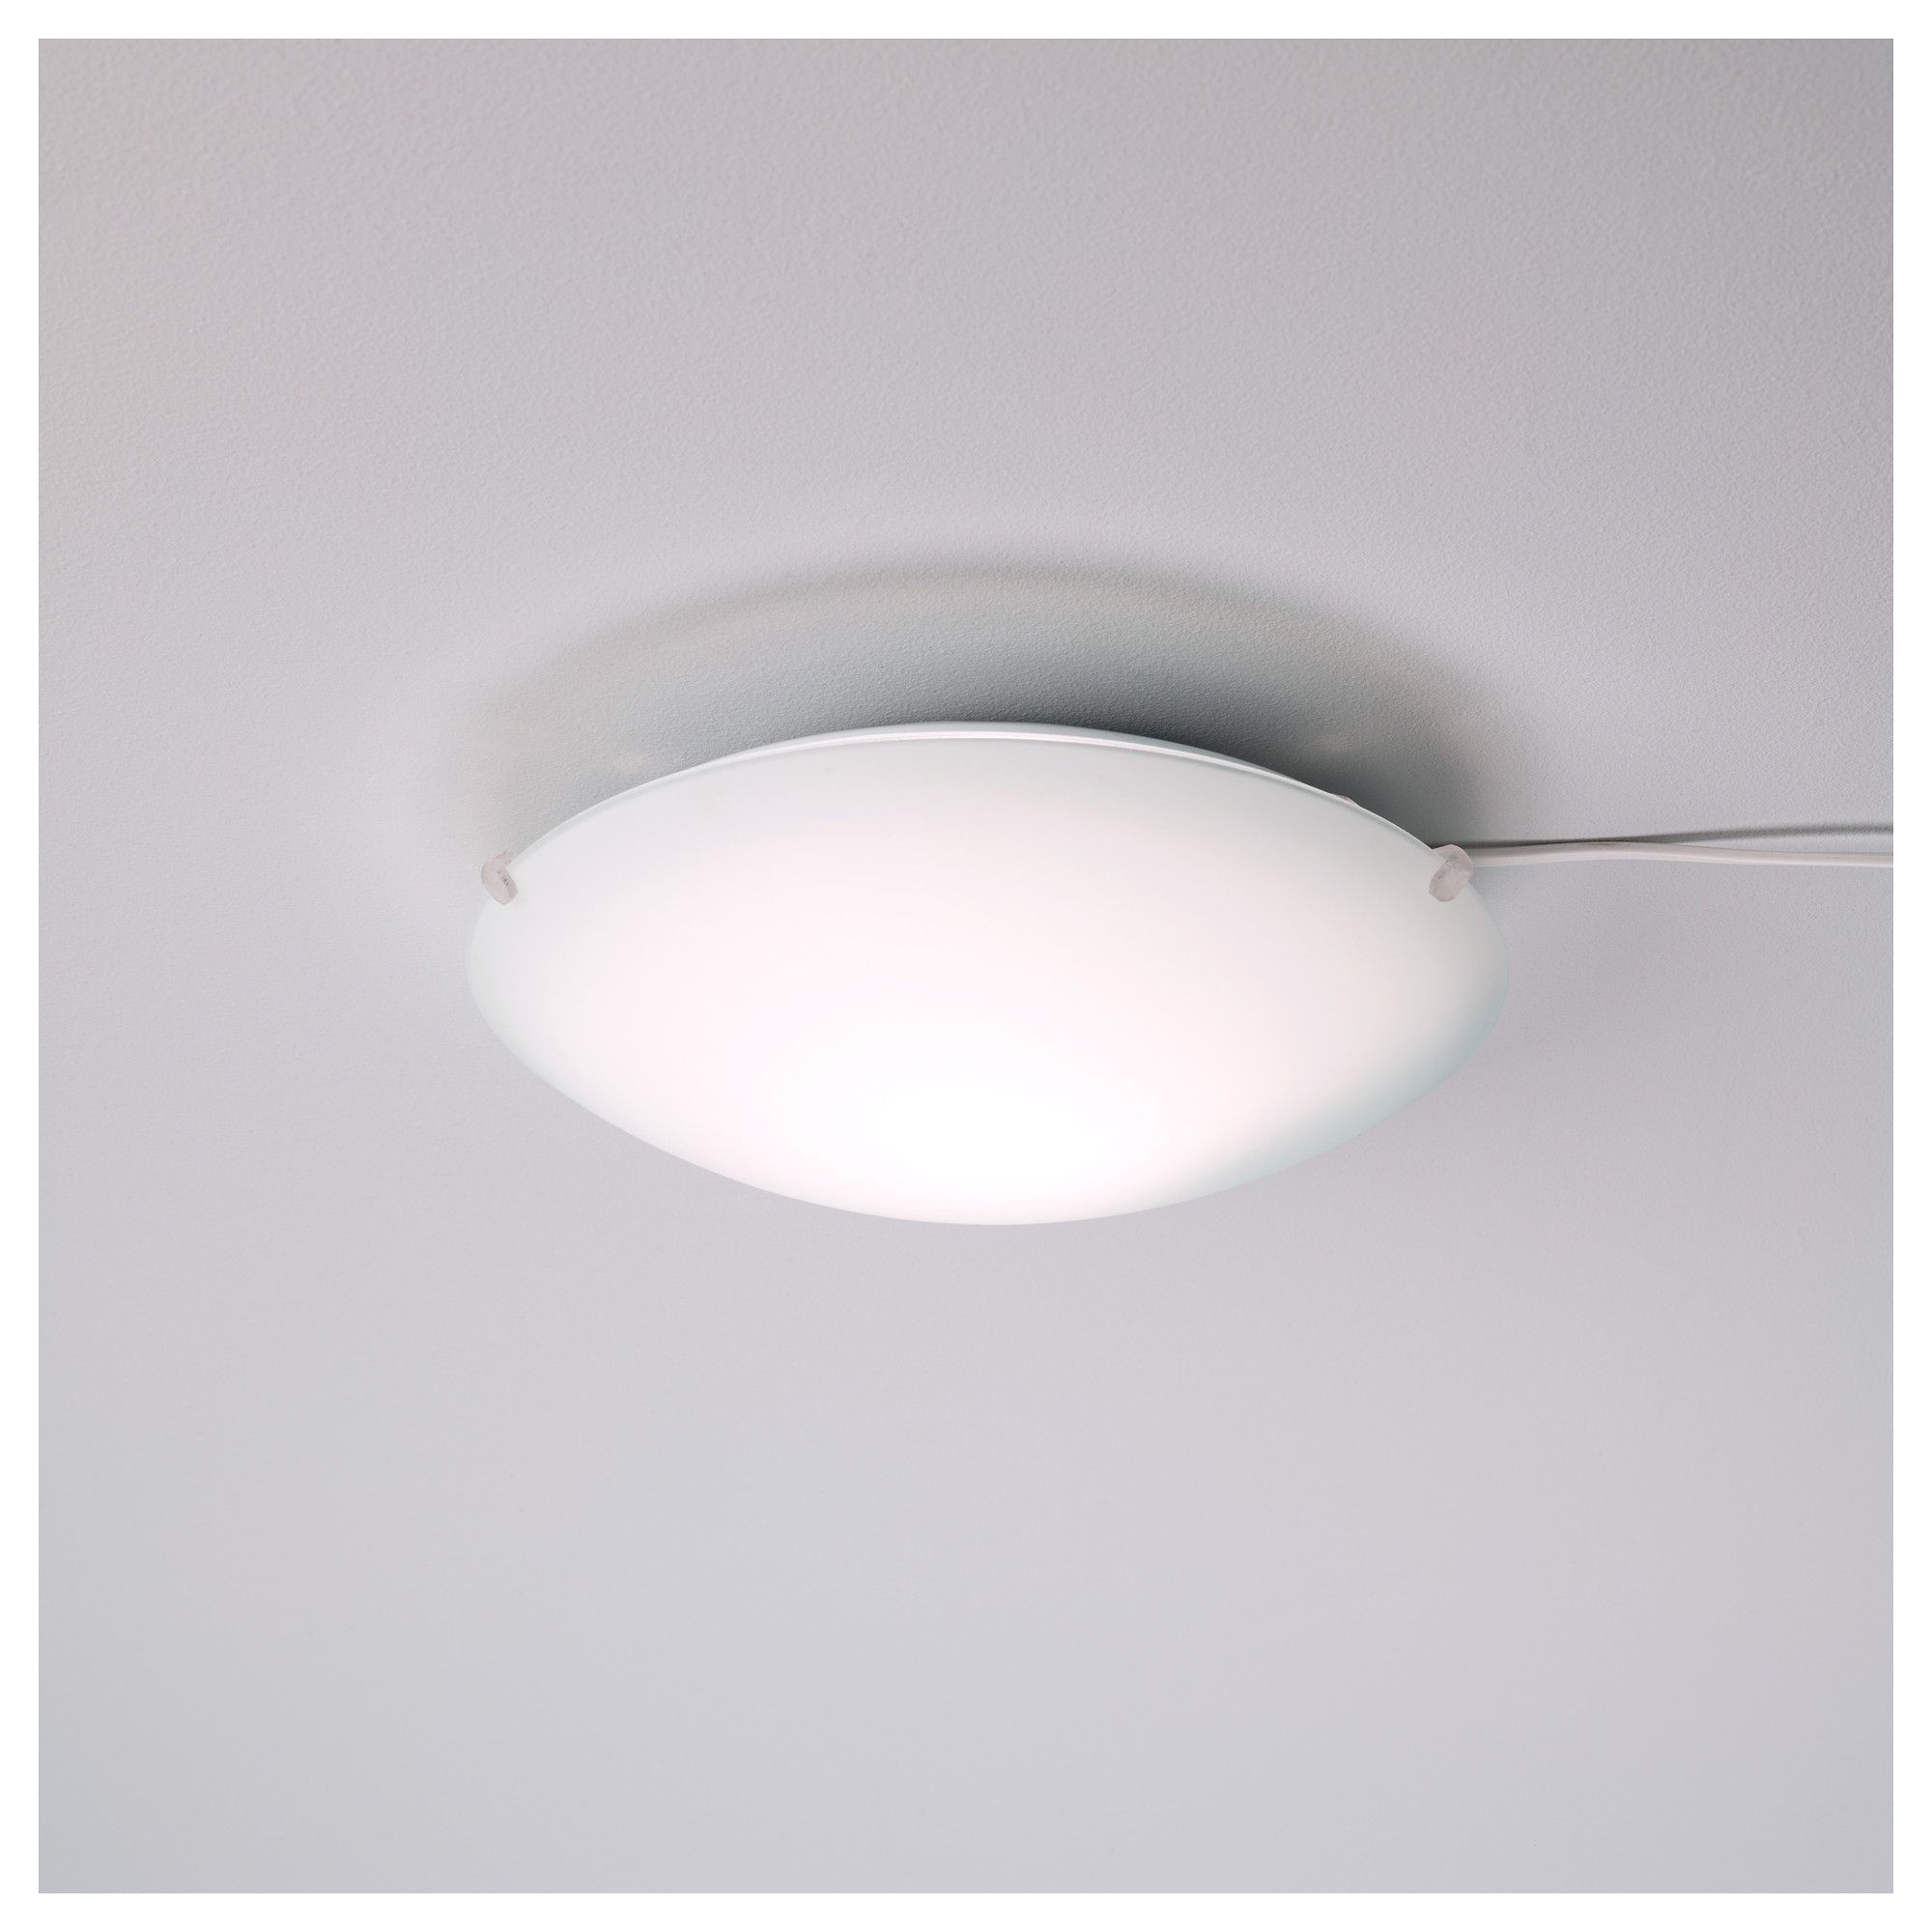 Ikea lighting fixtures ceiling Australia Lock Ceiling Lamp Ikea 5 For Ceiling Light Cant Beat That Price Could Always Spray Paint The Base With An Aioli Rubbed Bronze Finish Pinterest Lock Ceiling Lamp Ikea 5 For Ceiling Light Cant Beat That